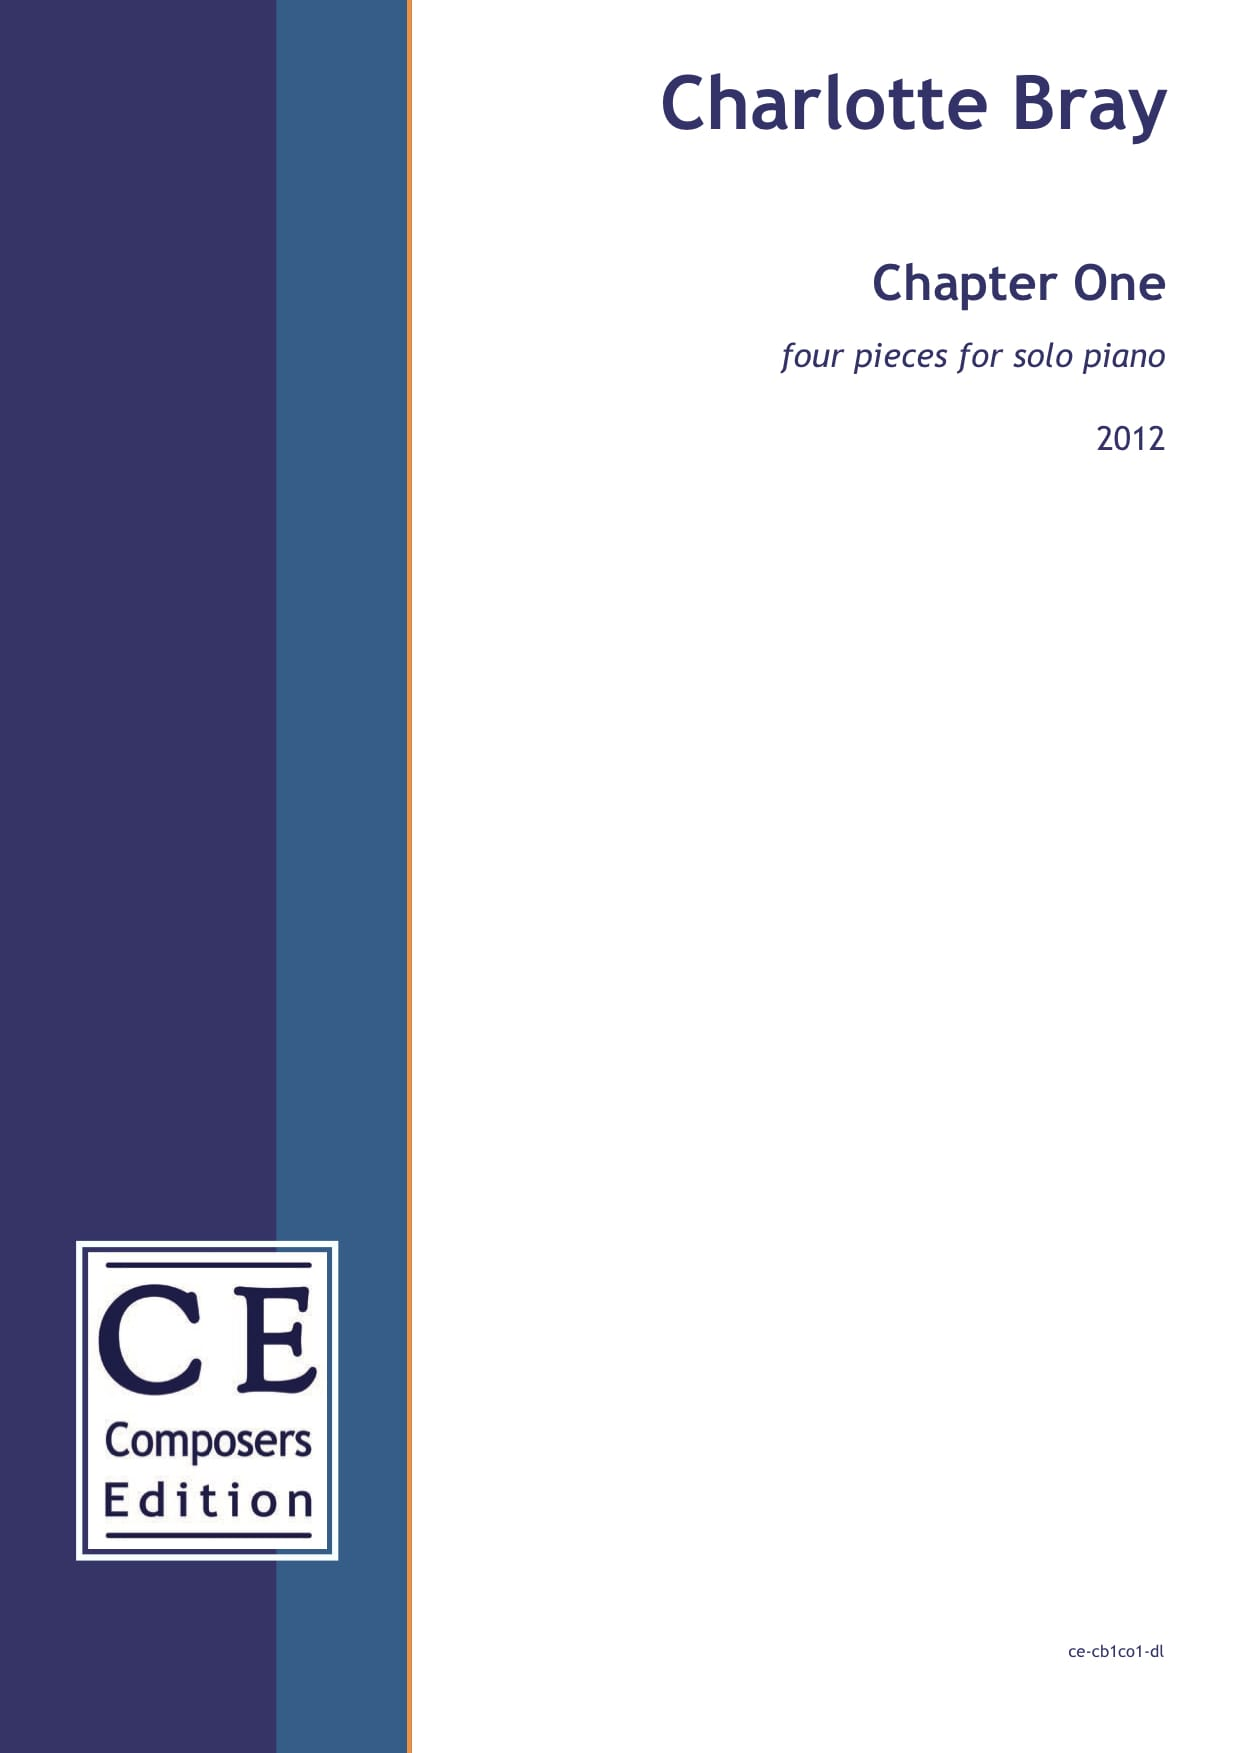 Charlotte Bray: Chapter One four pieces for solo piano